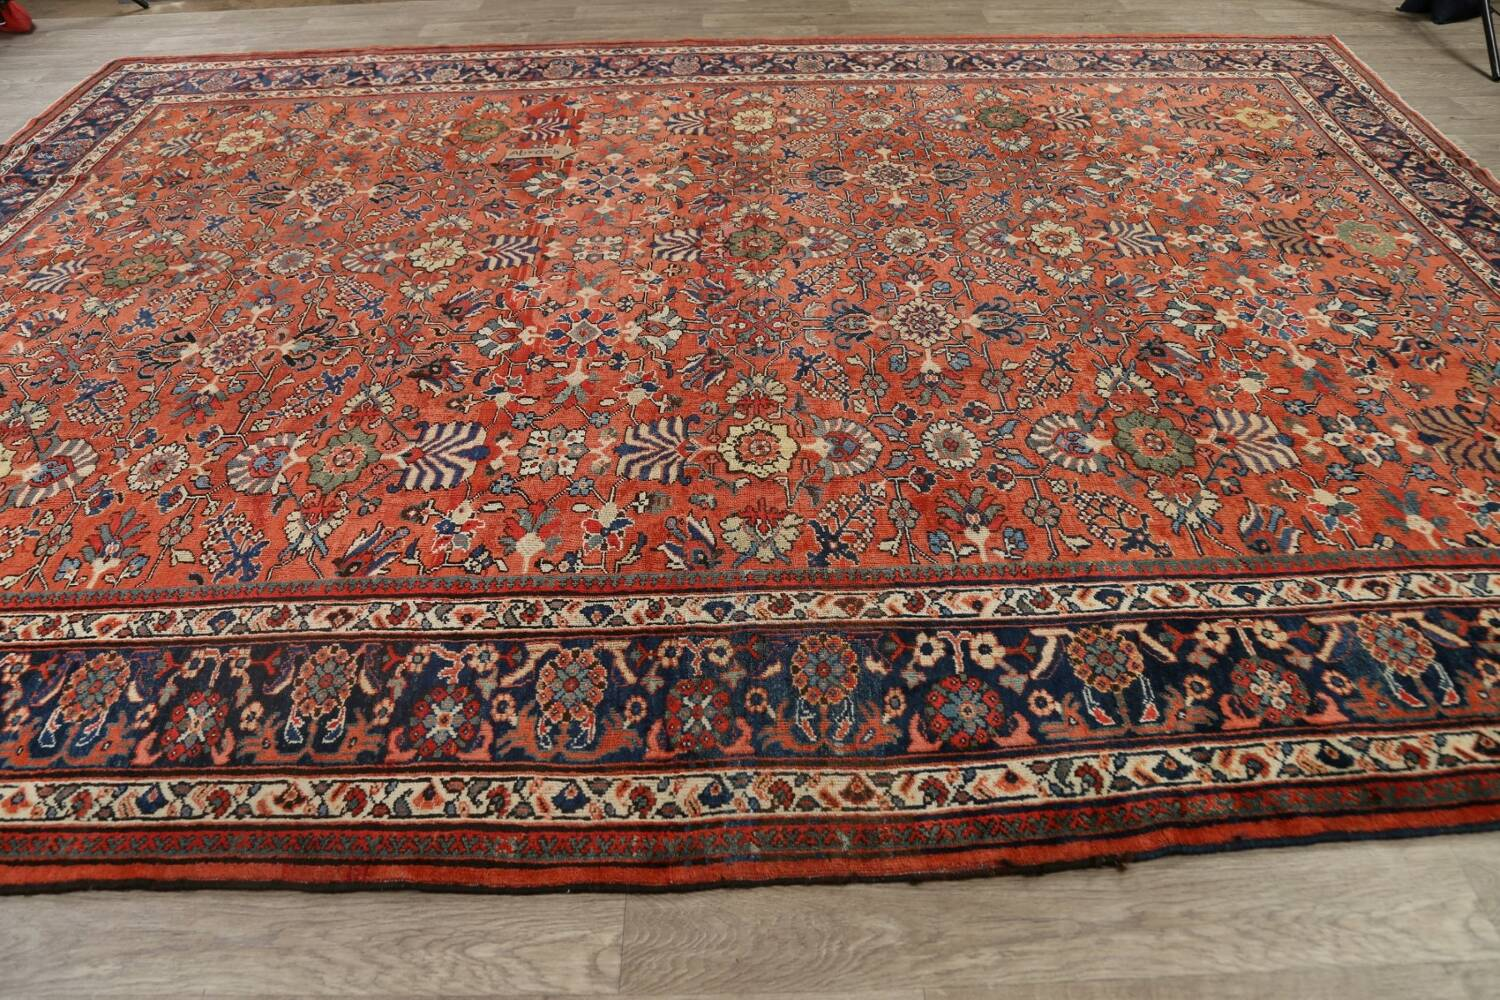 Pre-1900 Antique Vegetable Dye Sultanabad Persian Area Rug 10x14 image 14